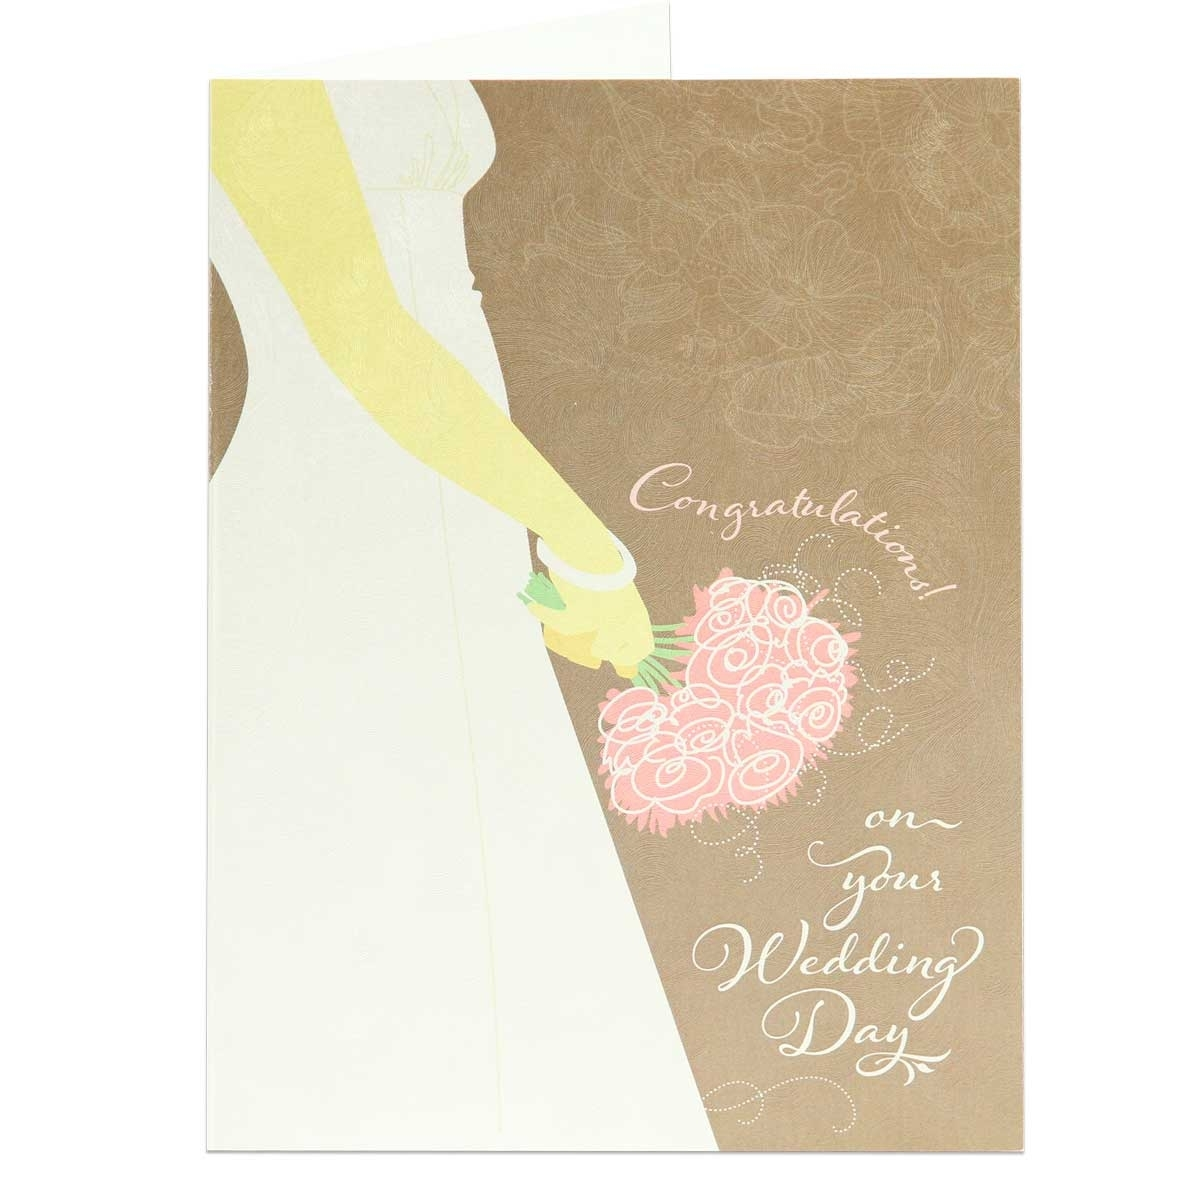 I love you pack assorted weddinganniversary greeting cards retail kristyandbryce Image collections